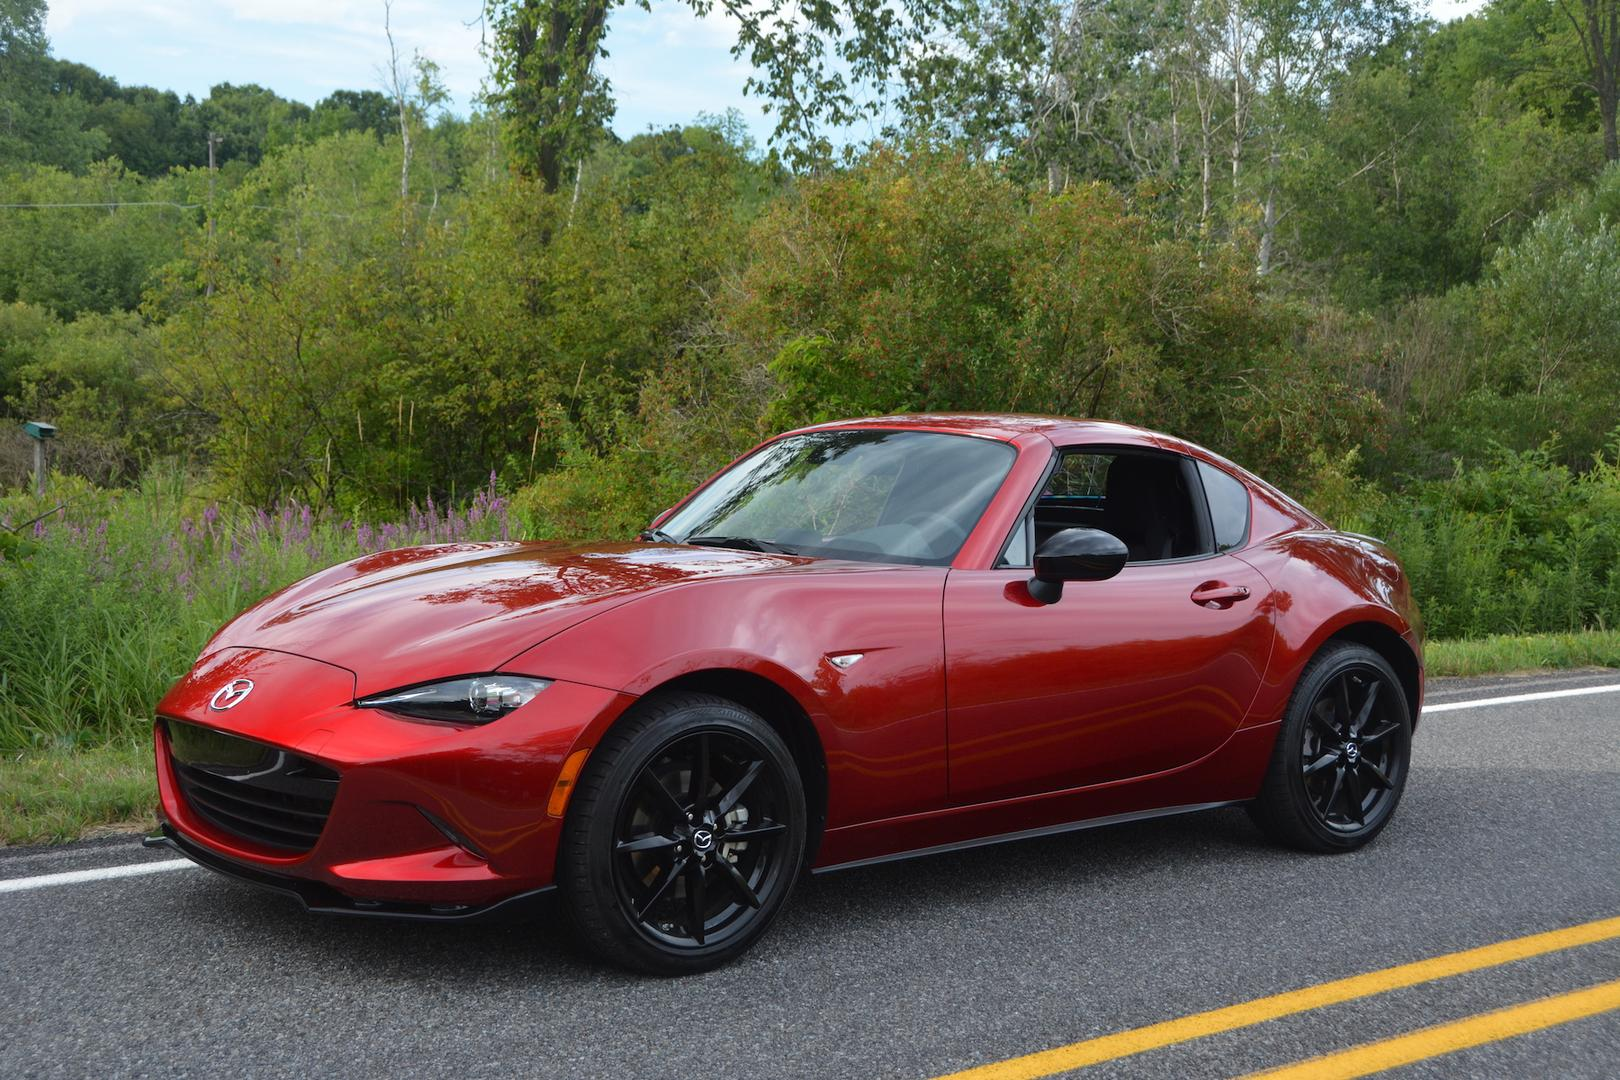 Mazda MX-5 Review